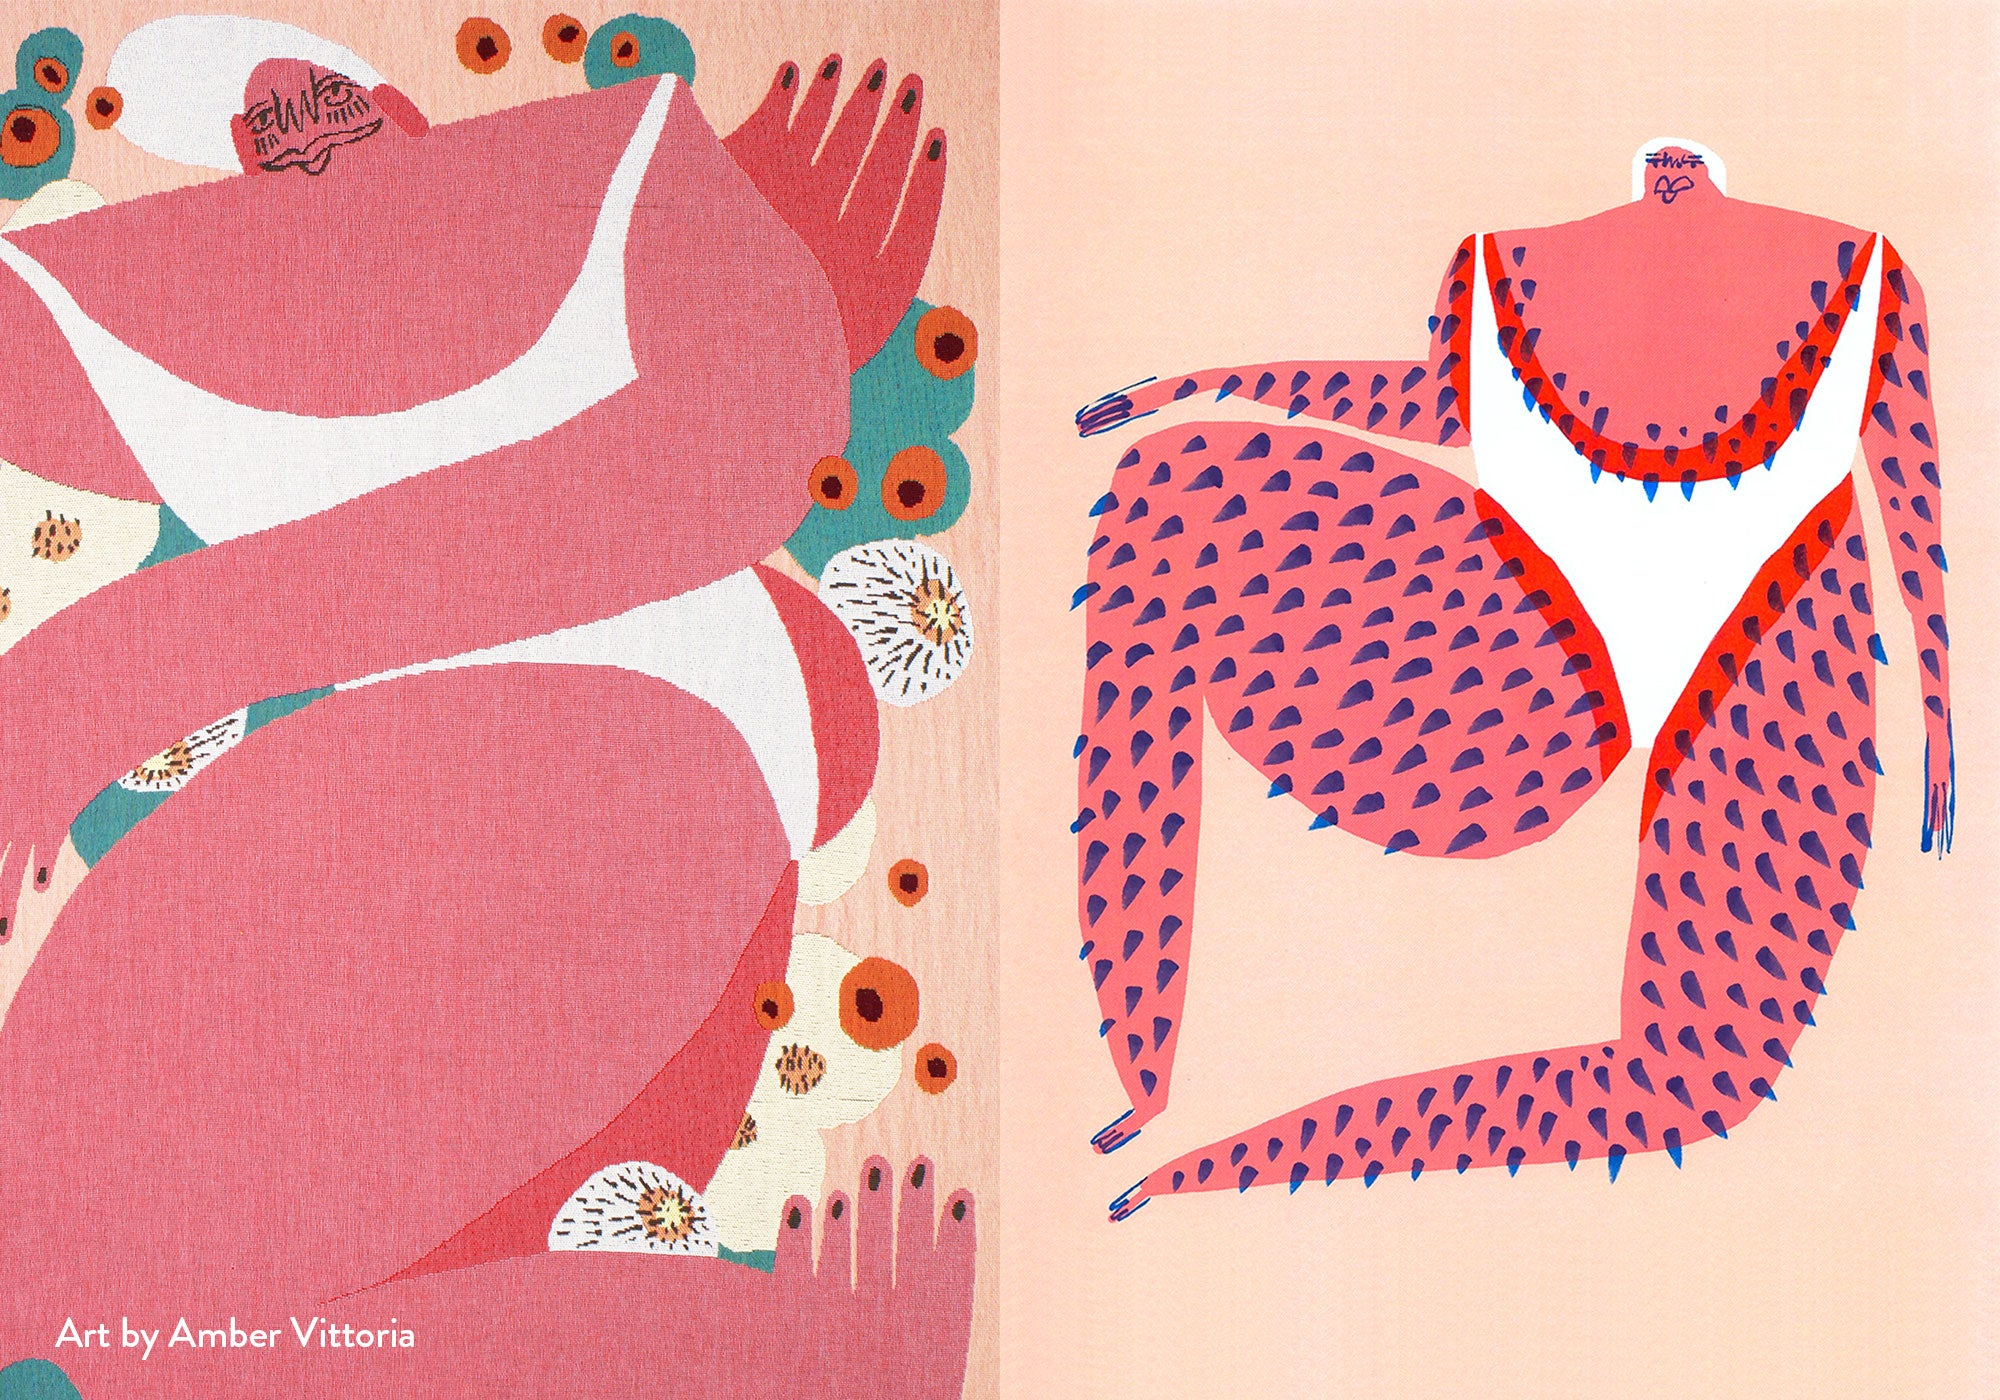 Four Female illustrators to Get Inspired And Celebrate Womanhood